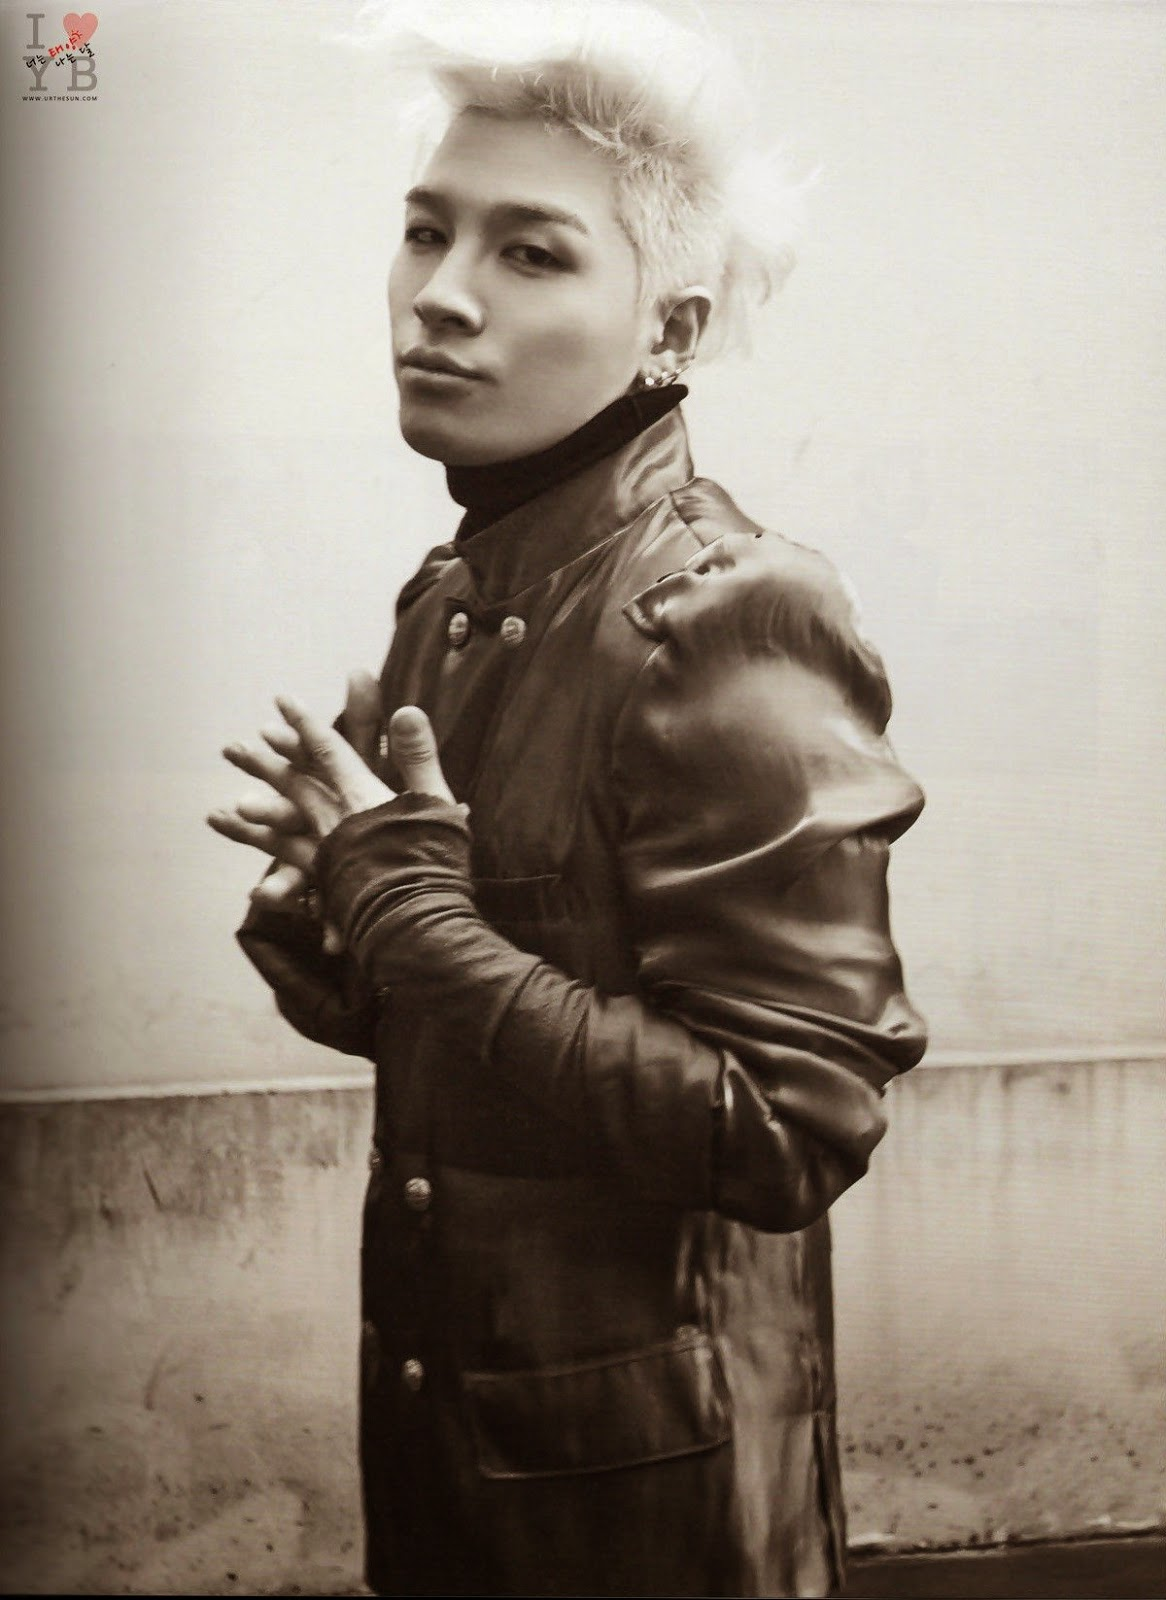 Taeyang Backgrounds, Compatible - PC, Mobile, Gadgets| 1166x1600 px